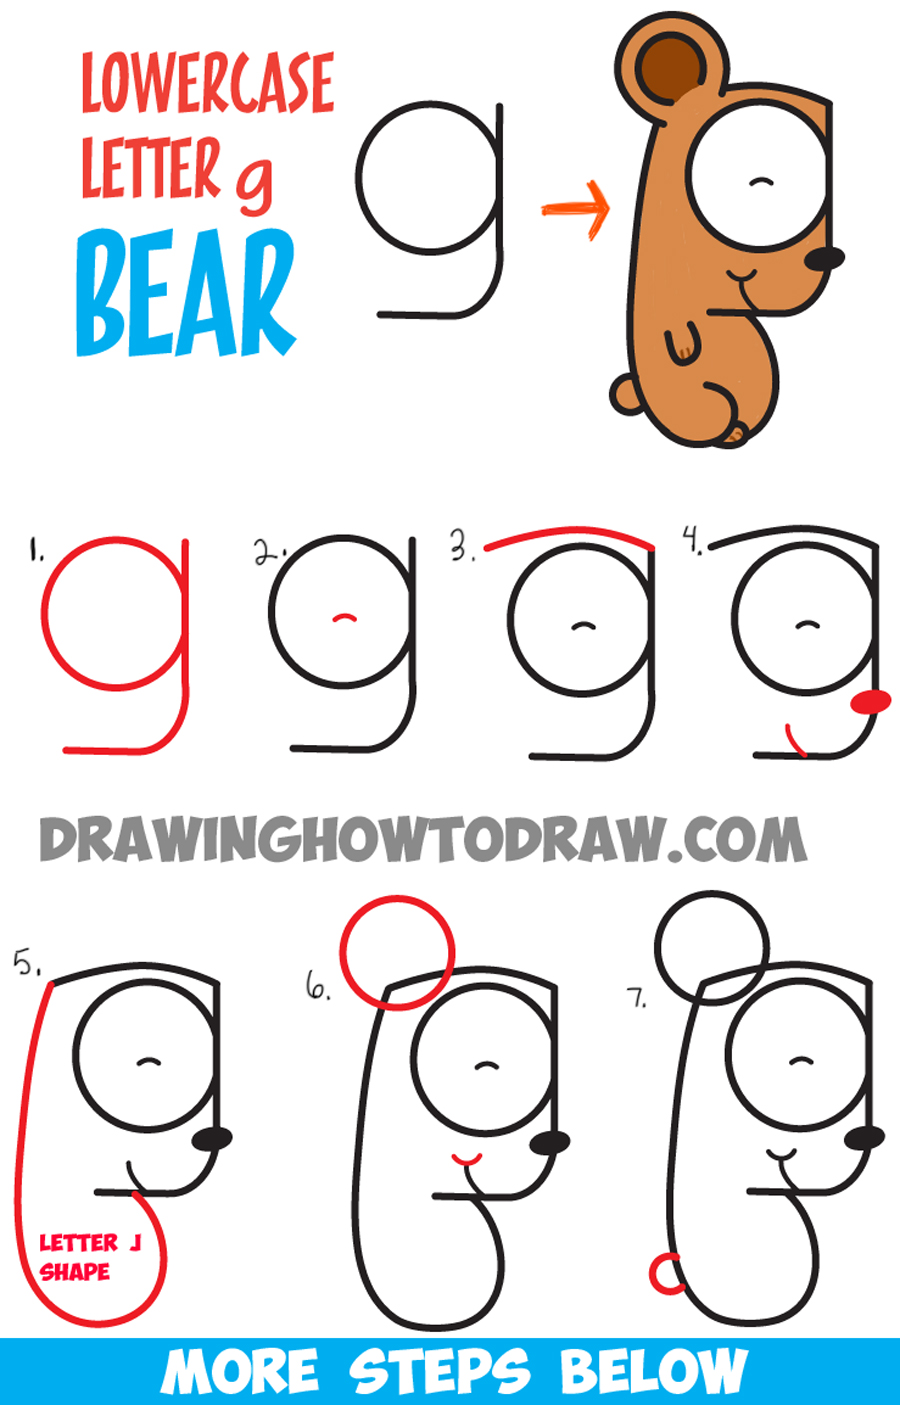 How to Draw Cartoon Bear Cub from Lowercase Letter g - Easy Step by Step Drawing Tutorial for Kids